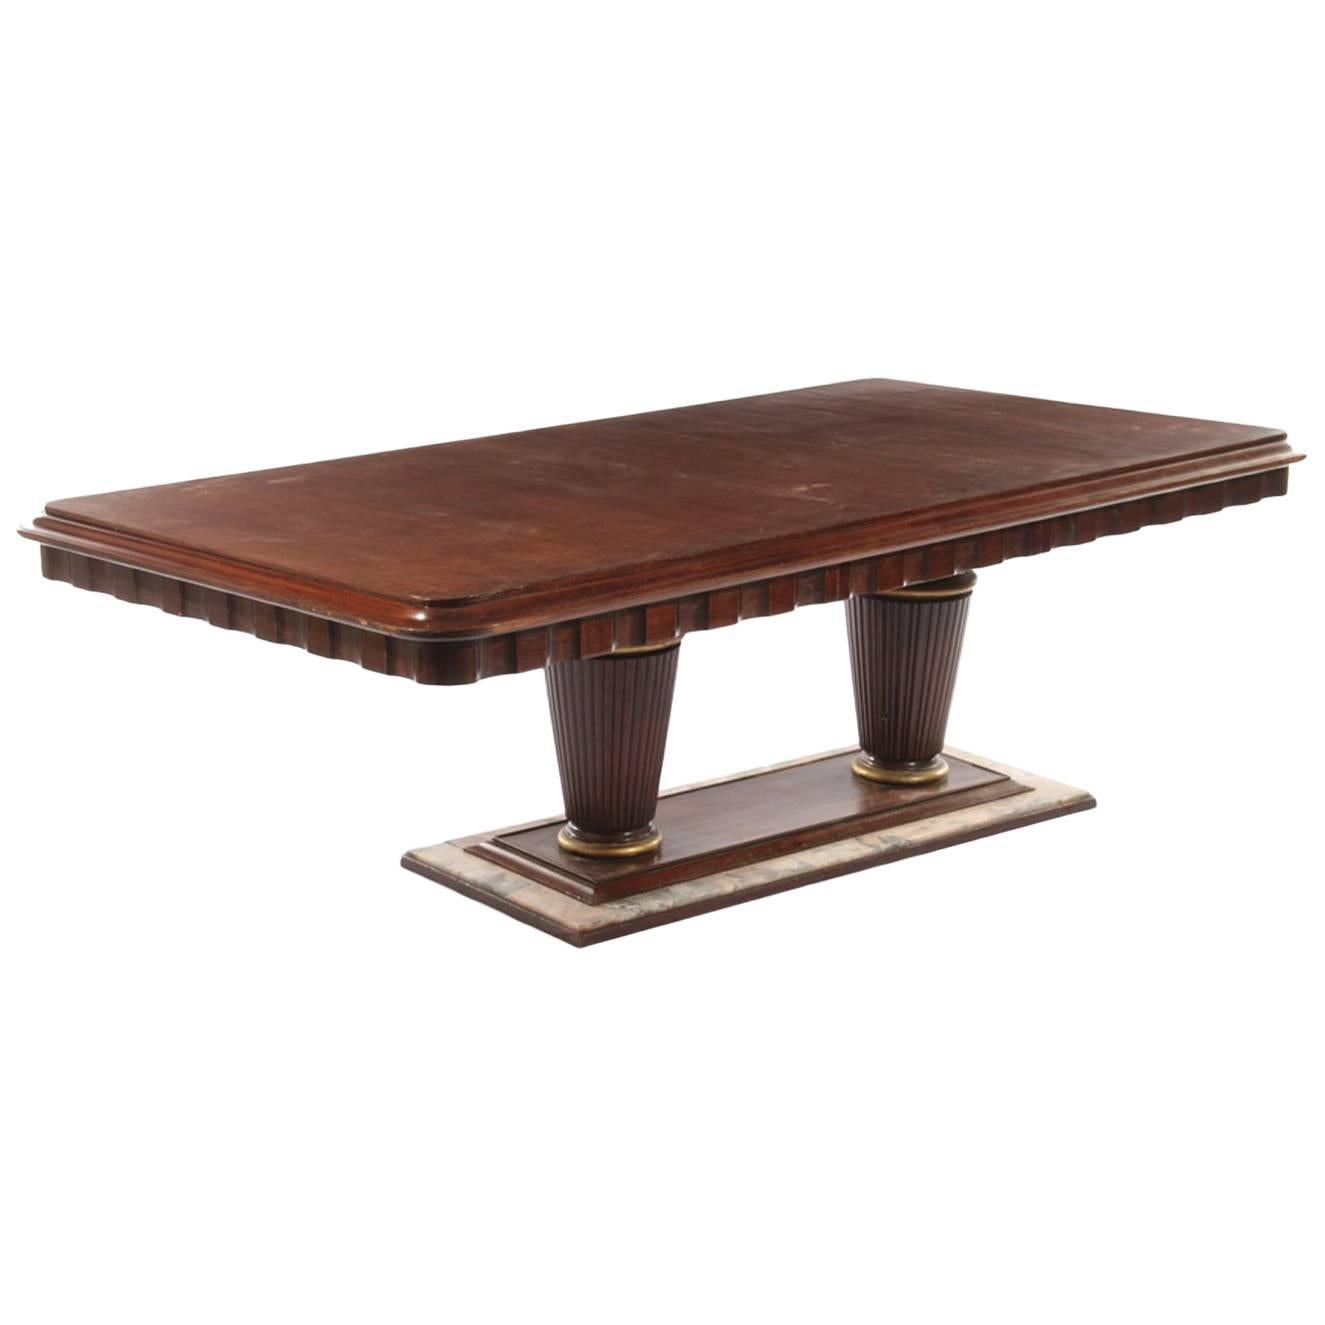 Mahogany And Marble Art Deco Dining Room Table, Circa 1935